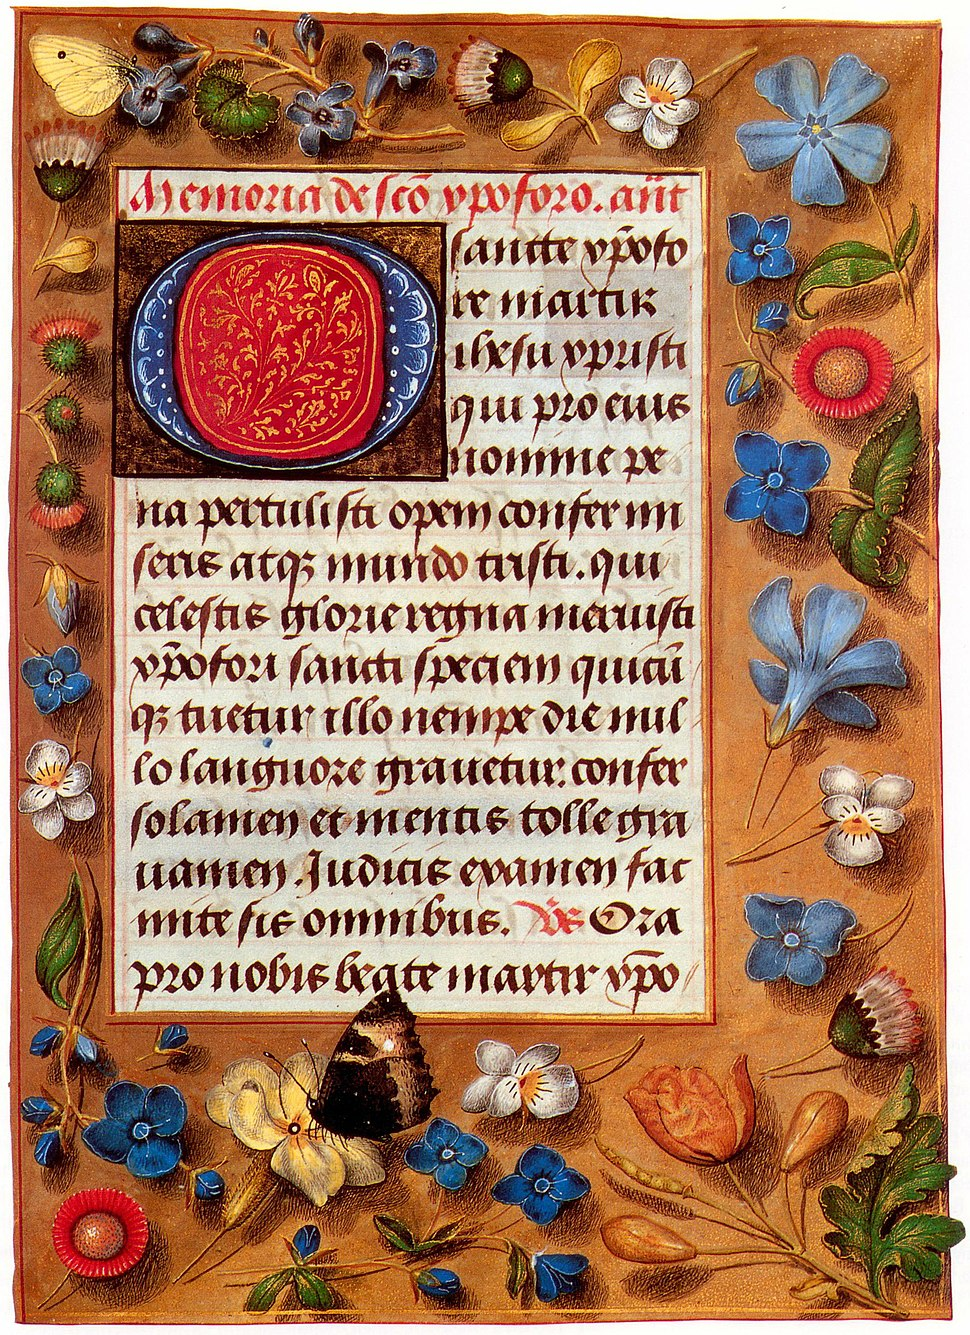 Hastings book of the hours